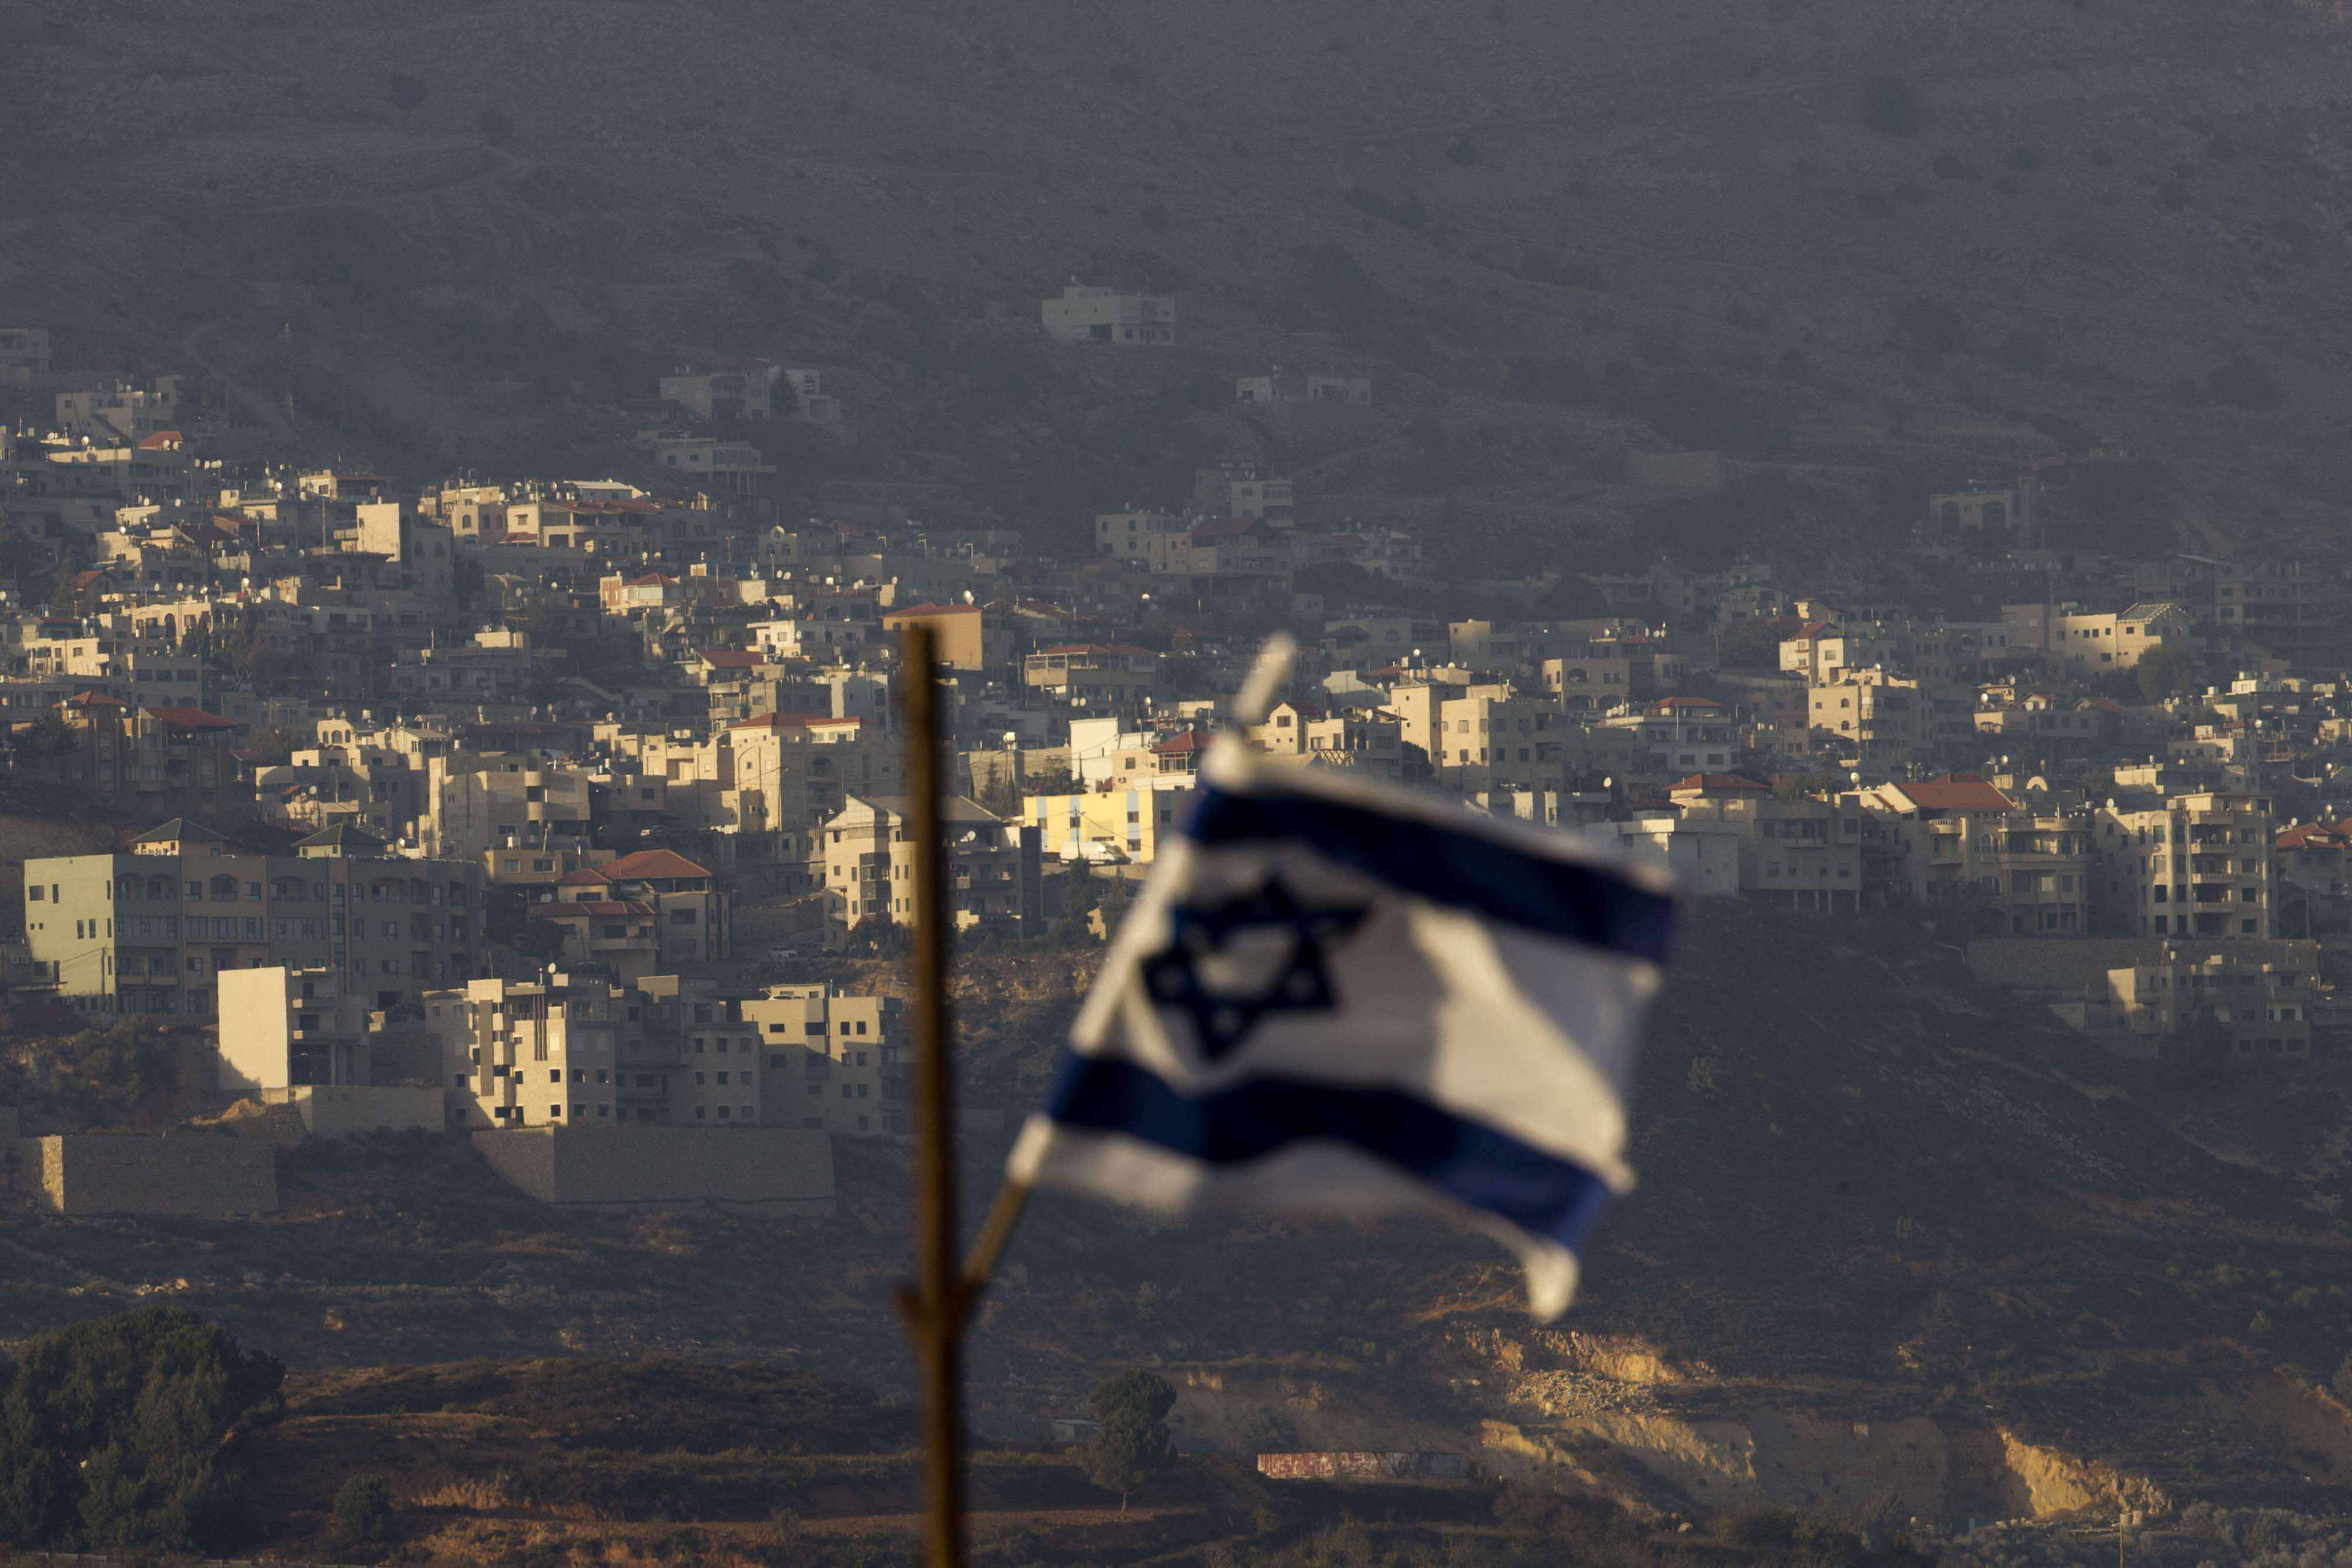 Polling was to occur in four Druze villages in the Golan, though it was called off in two because there were no candidates.